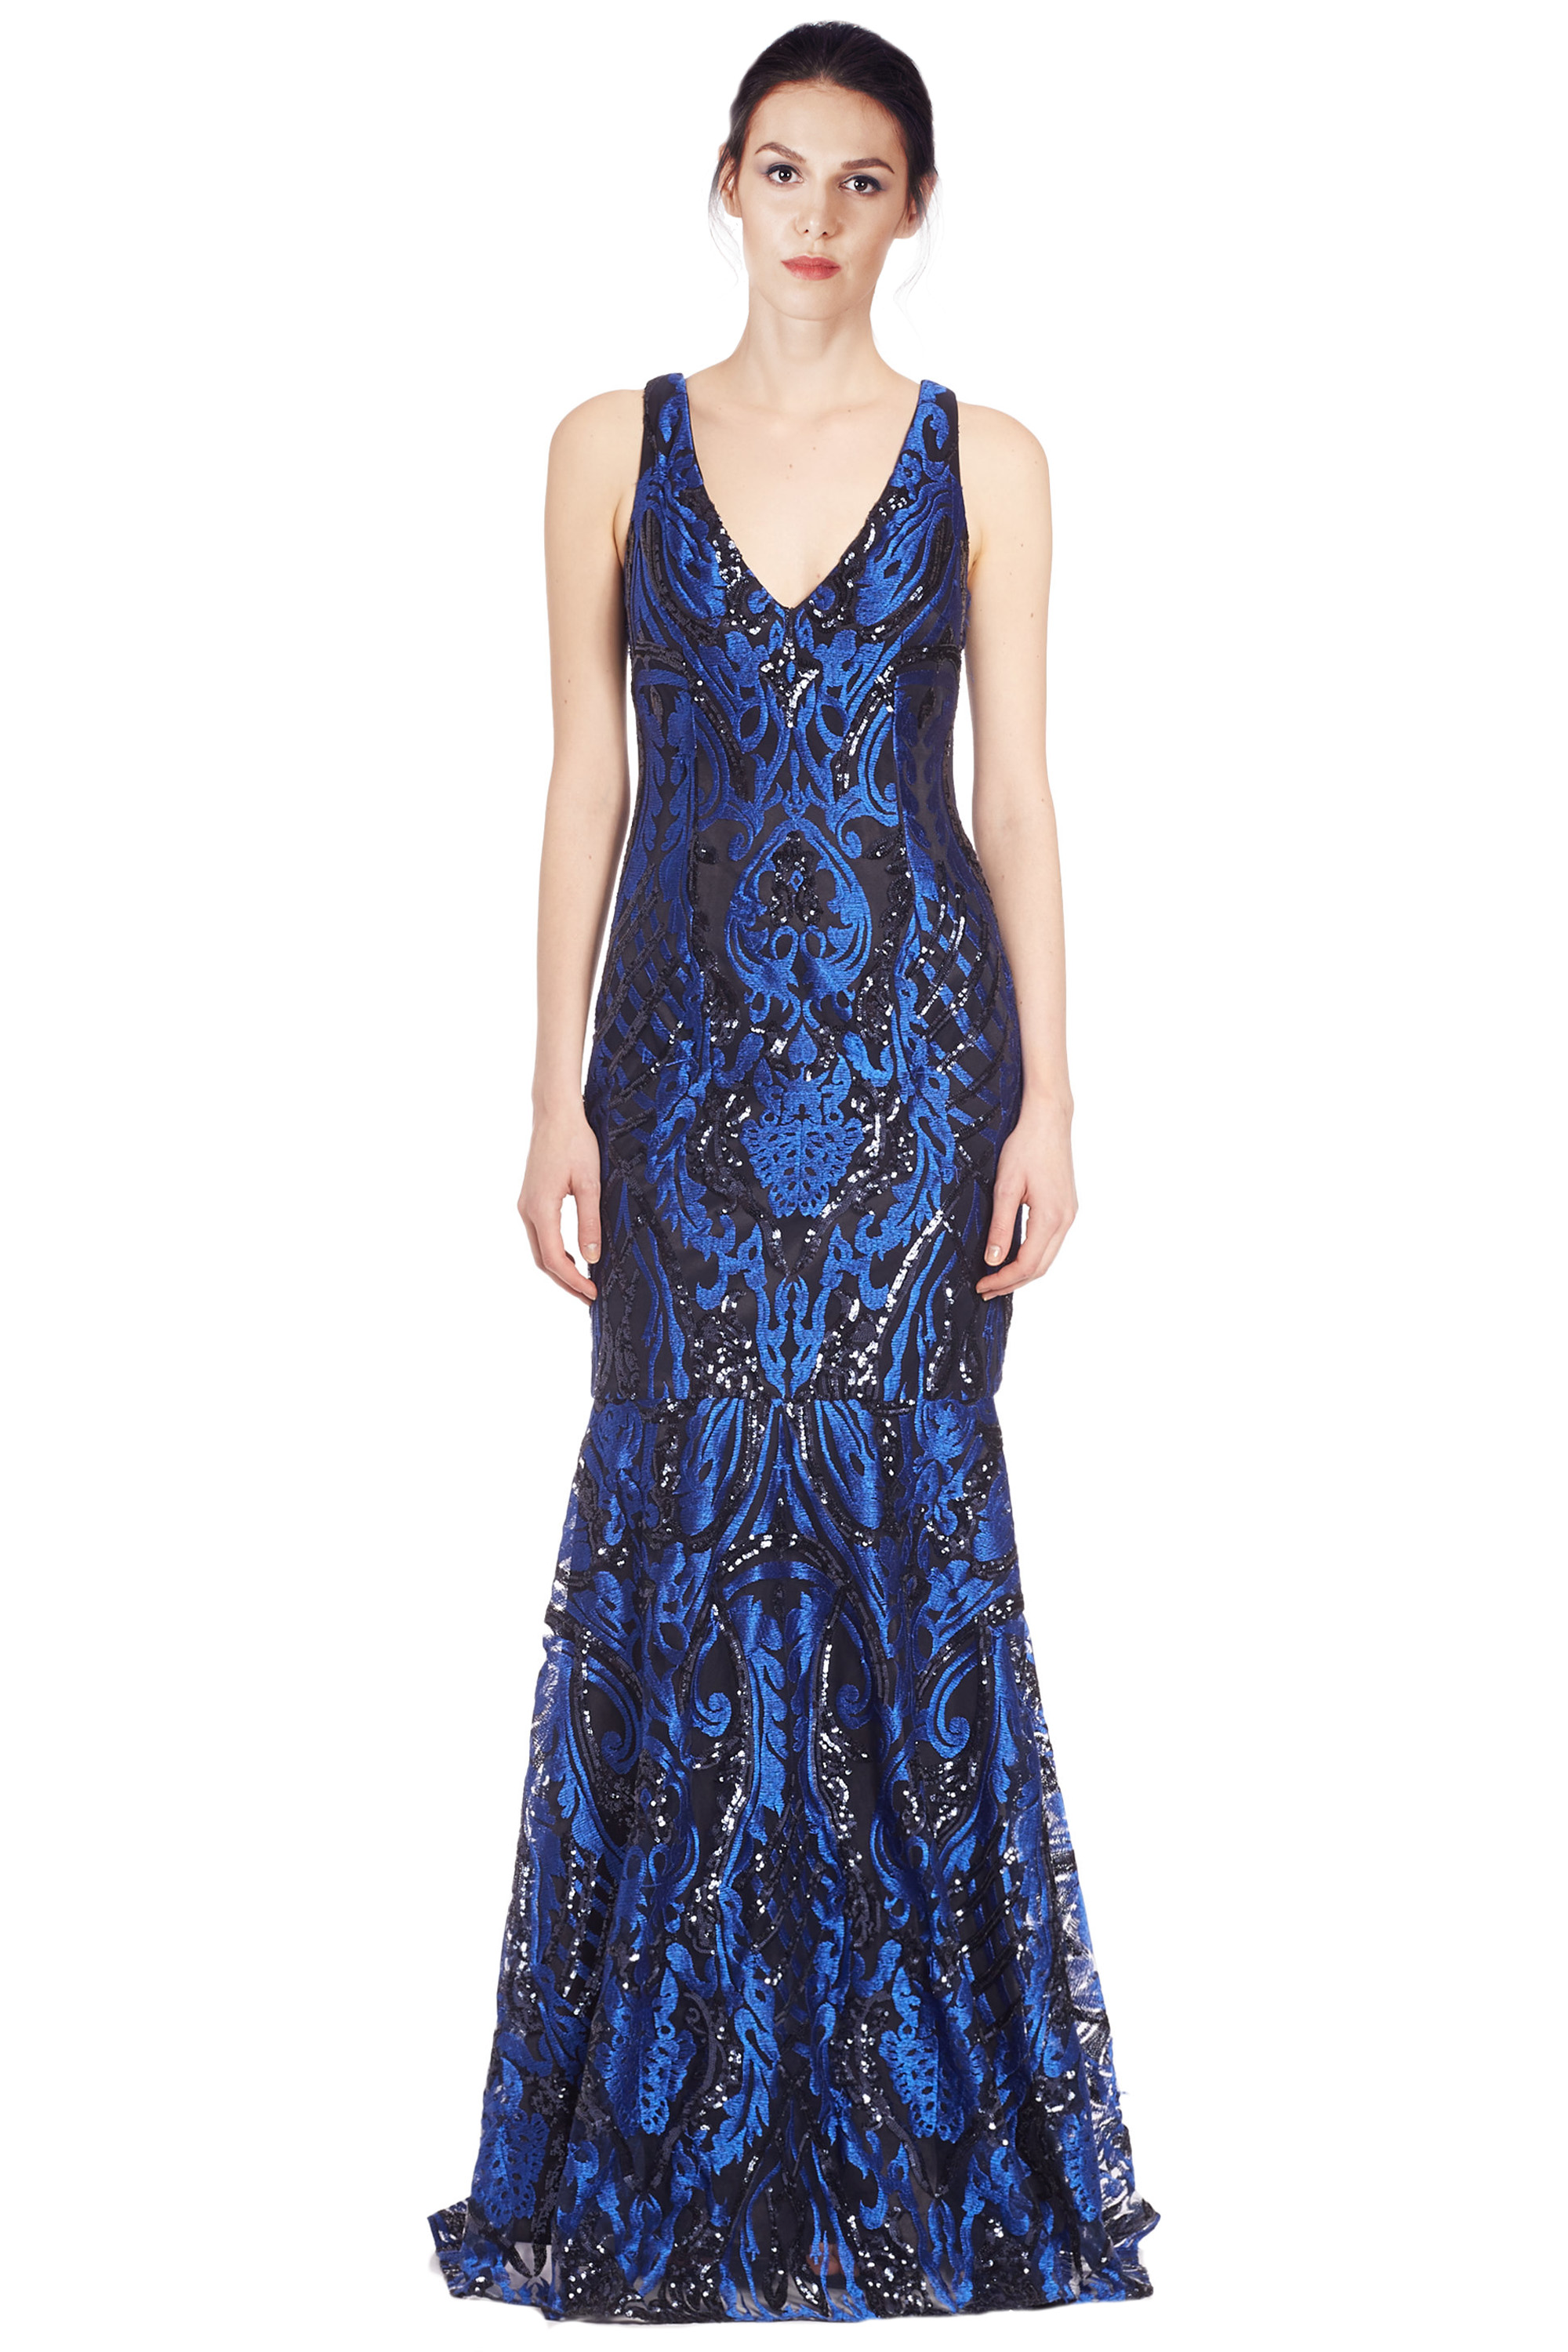 32b4790ad902 David Meister Blue Embroidered Sequin V-Neck Evening Gown Dress 2 ...